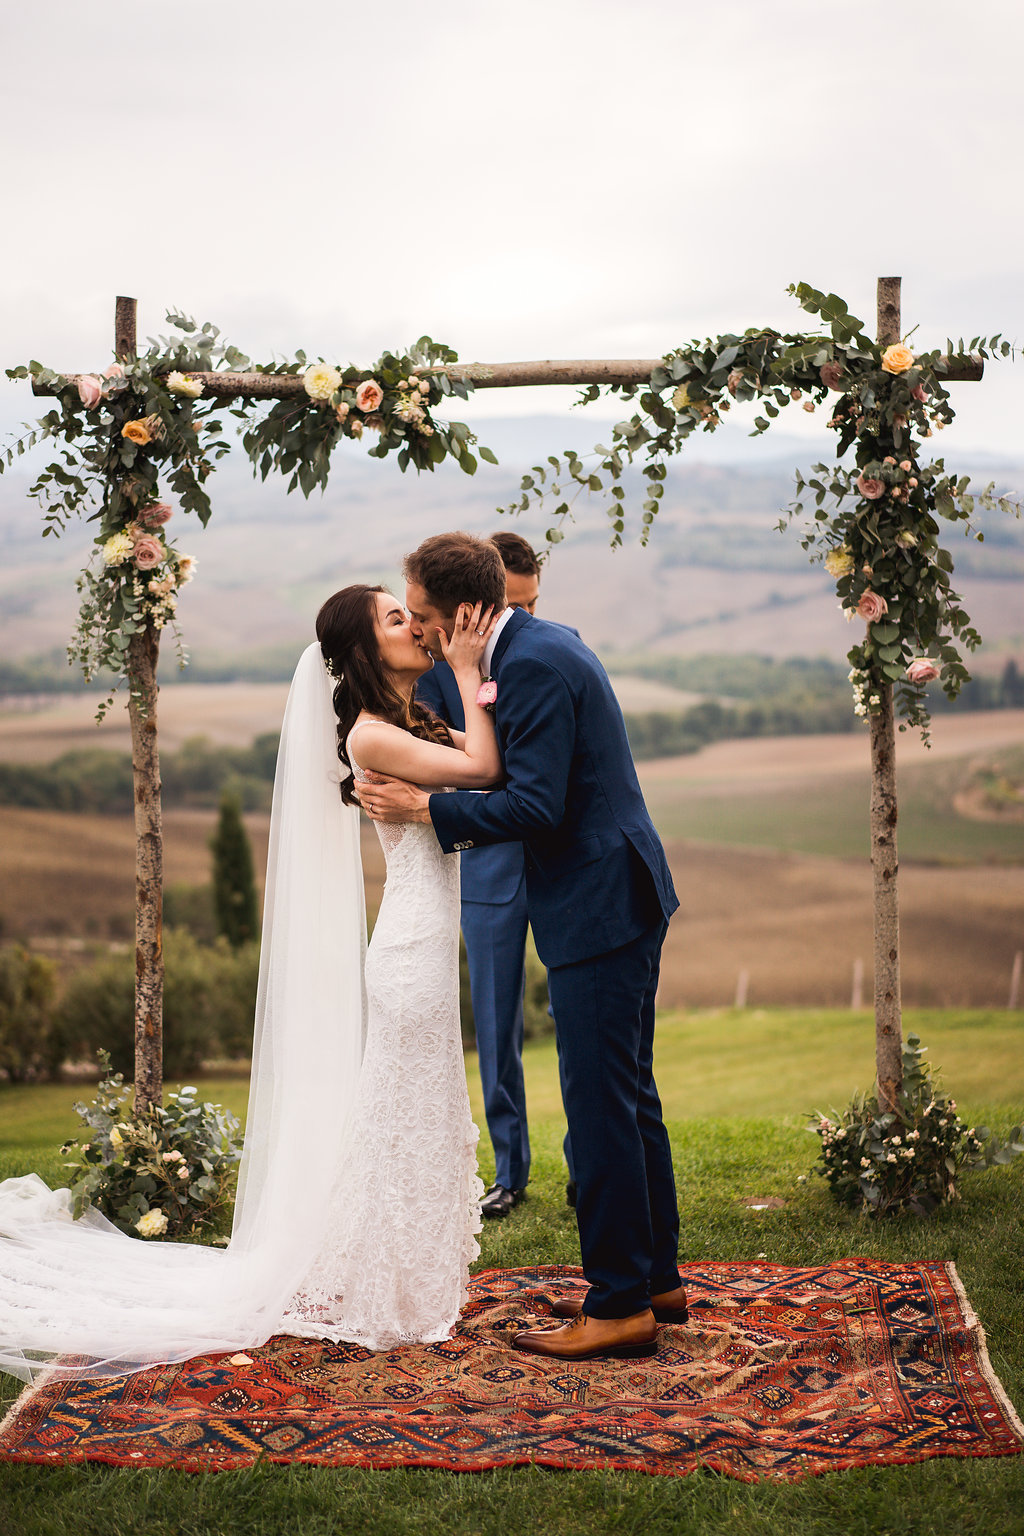 Kiss - Wedding in Tuscany - Italian Wedding Designer